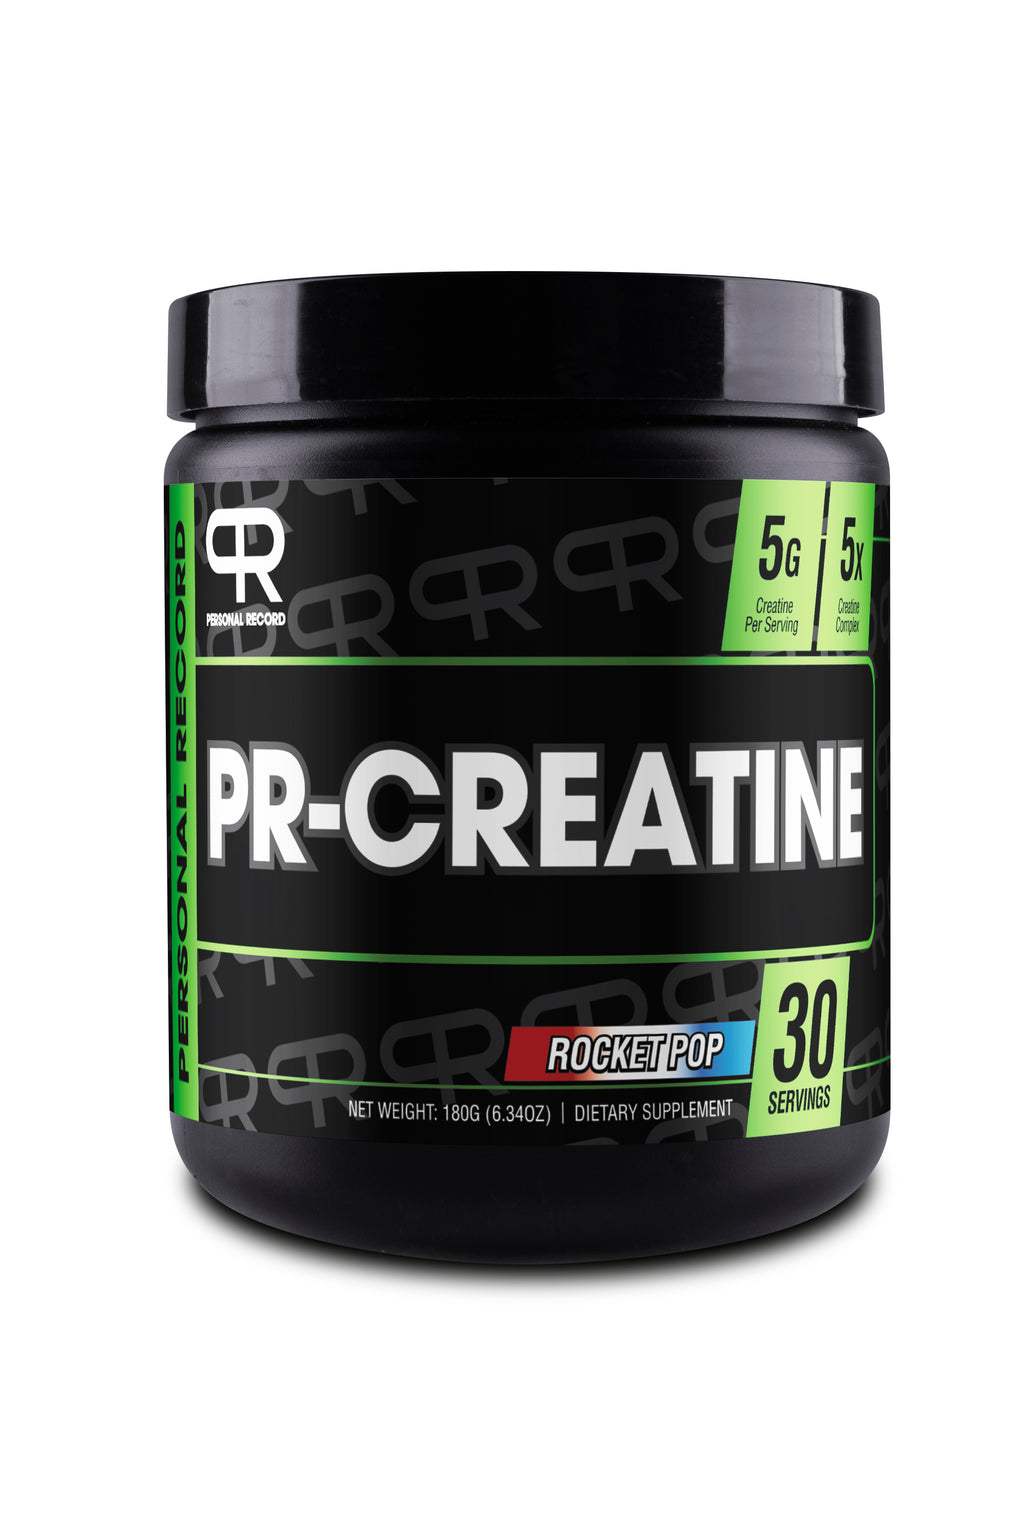 PR Supps - CREATINE - Rocket Pop